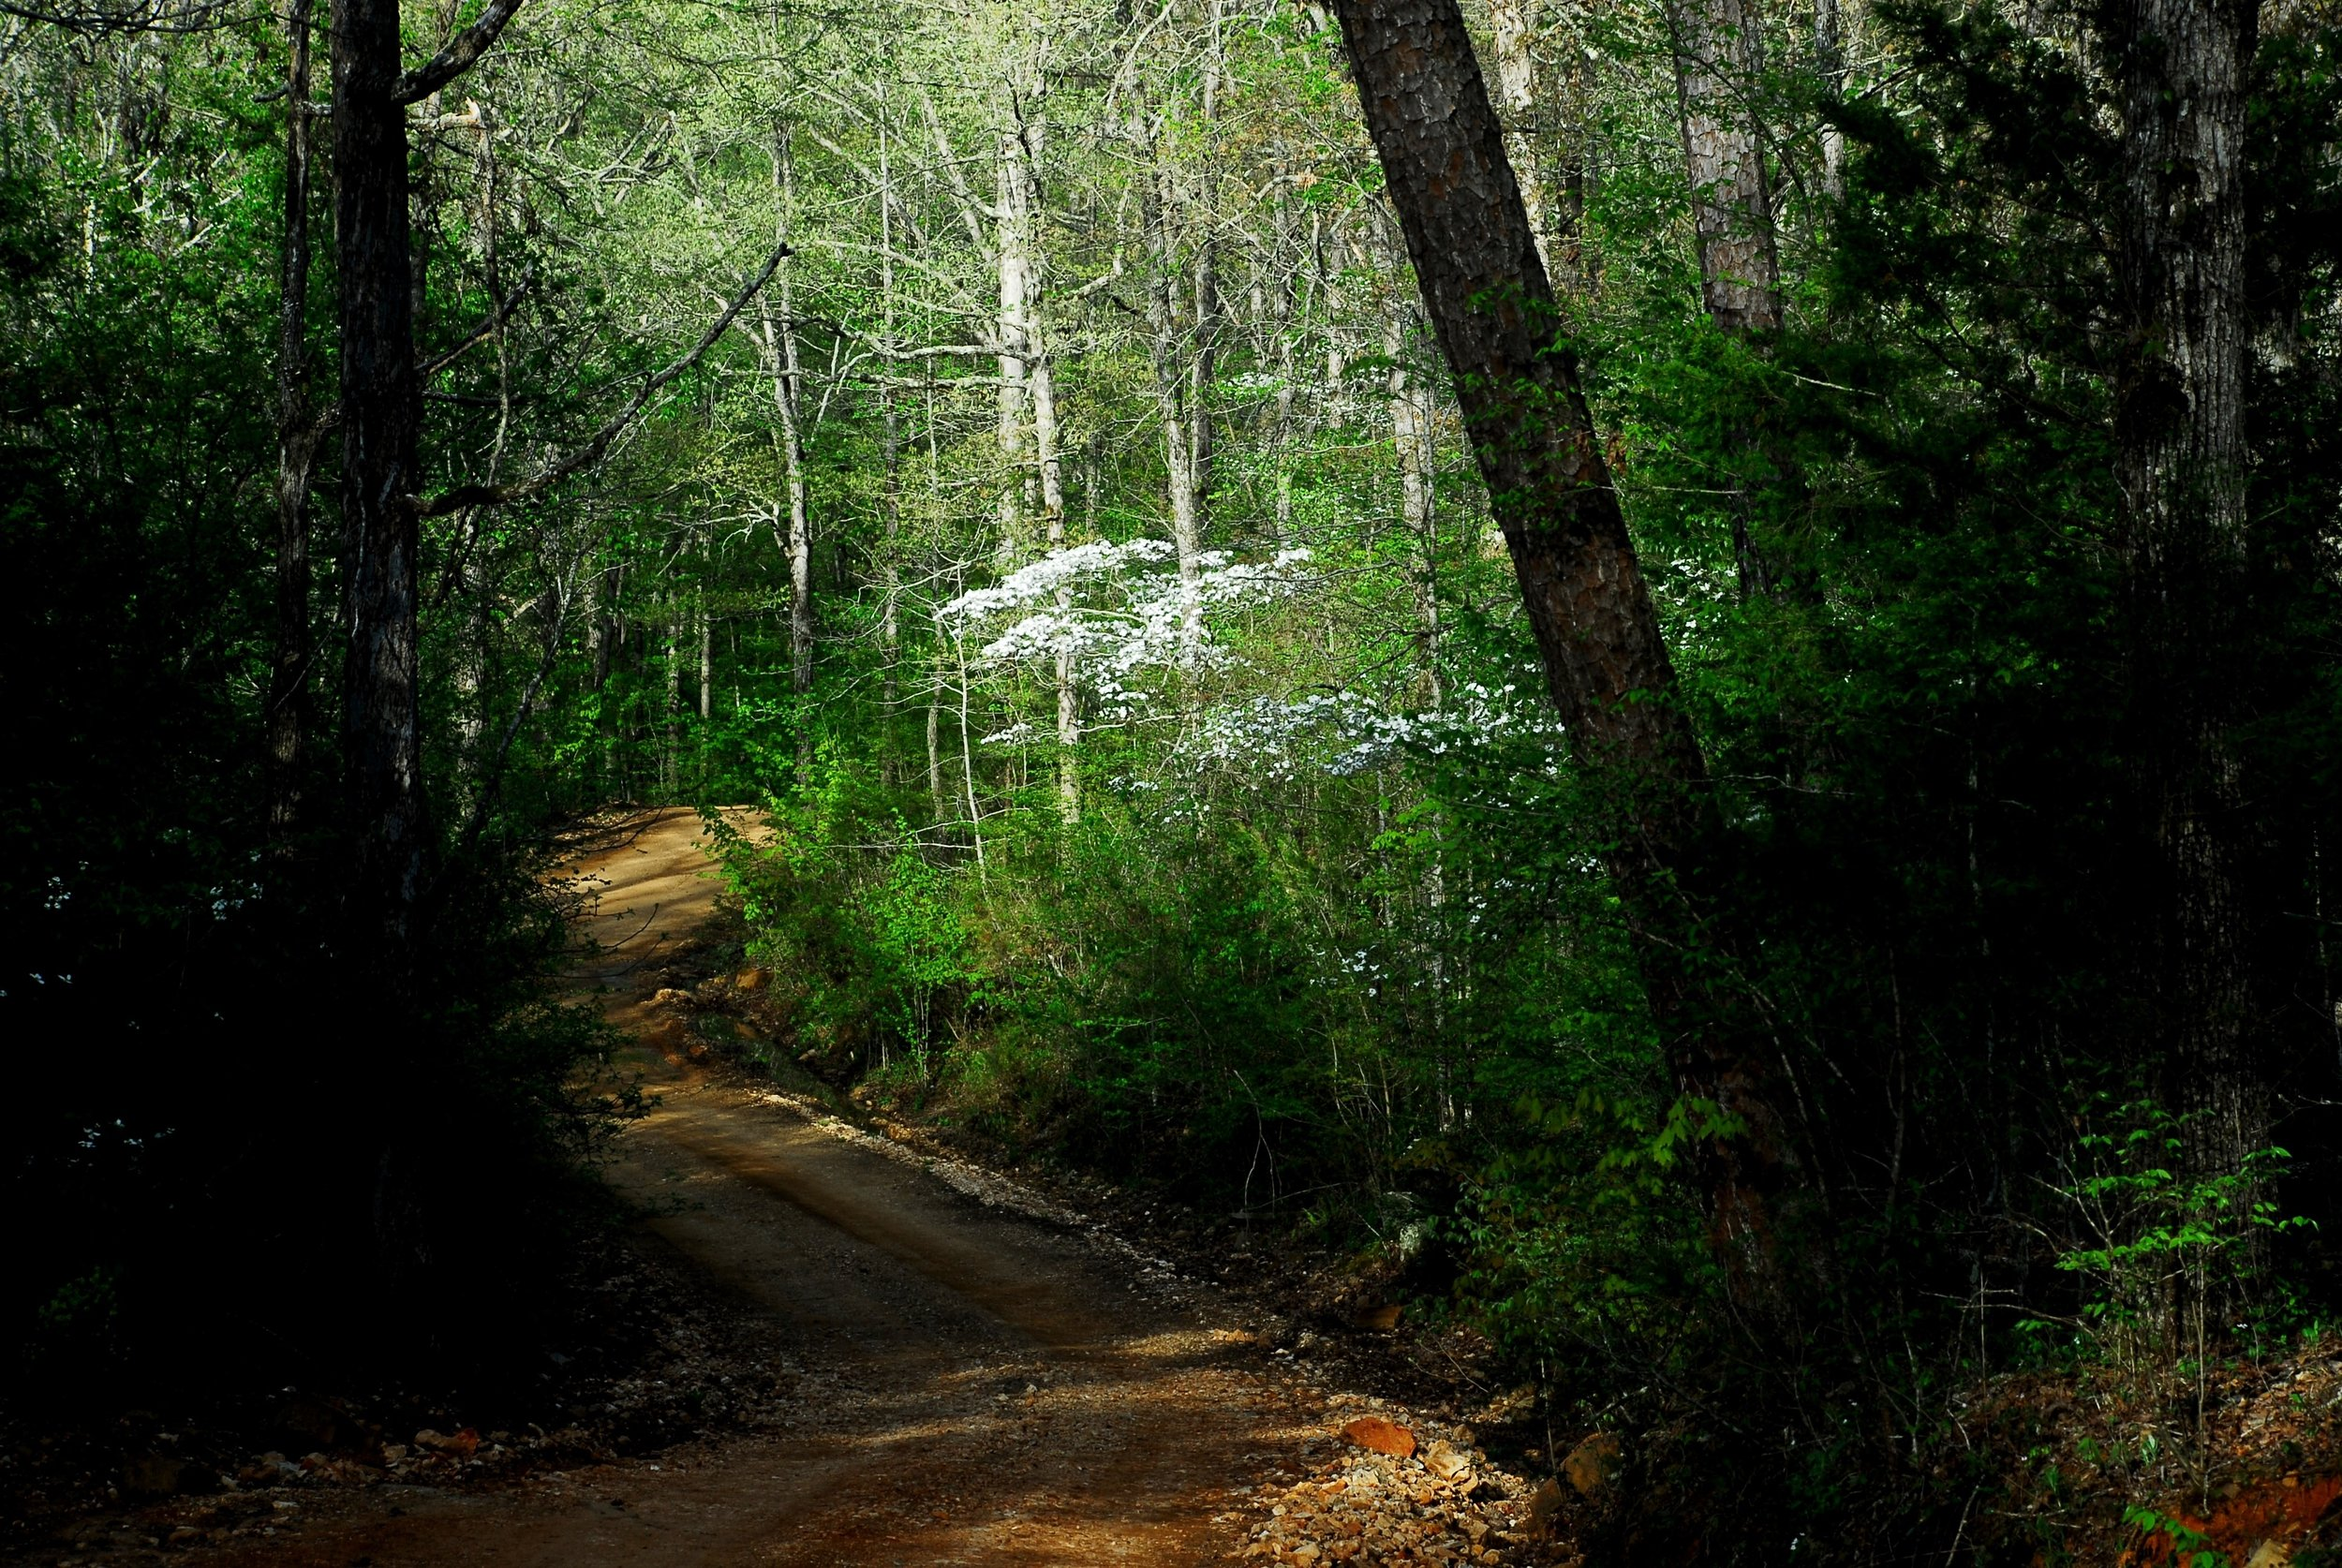 The deep woods surrounding the Meadowcreek Project near Fox provide some of Arkansas' best forest bathing opportunities.